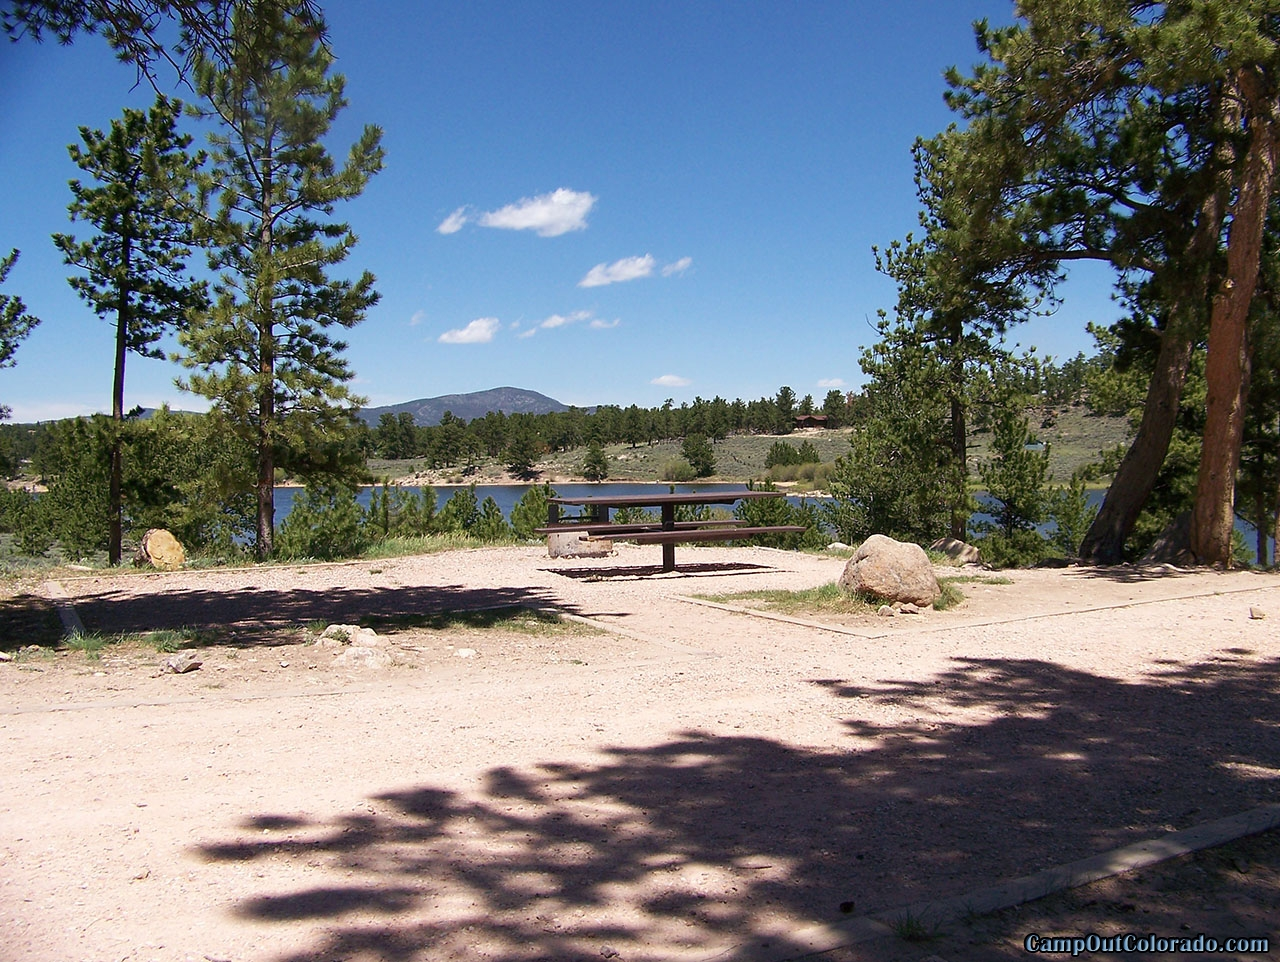 campoutcolorado-west-lake-camp-site